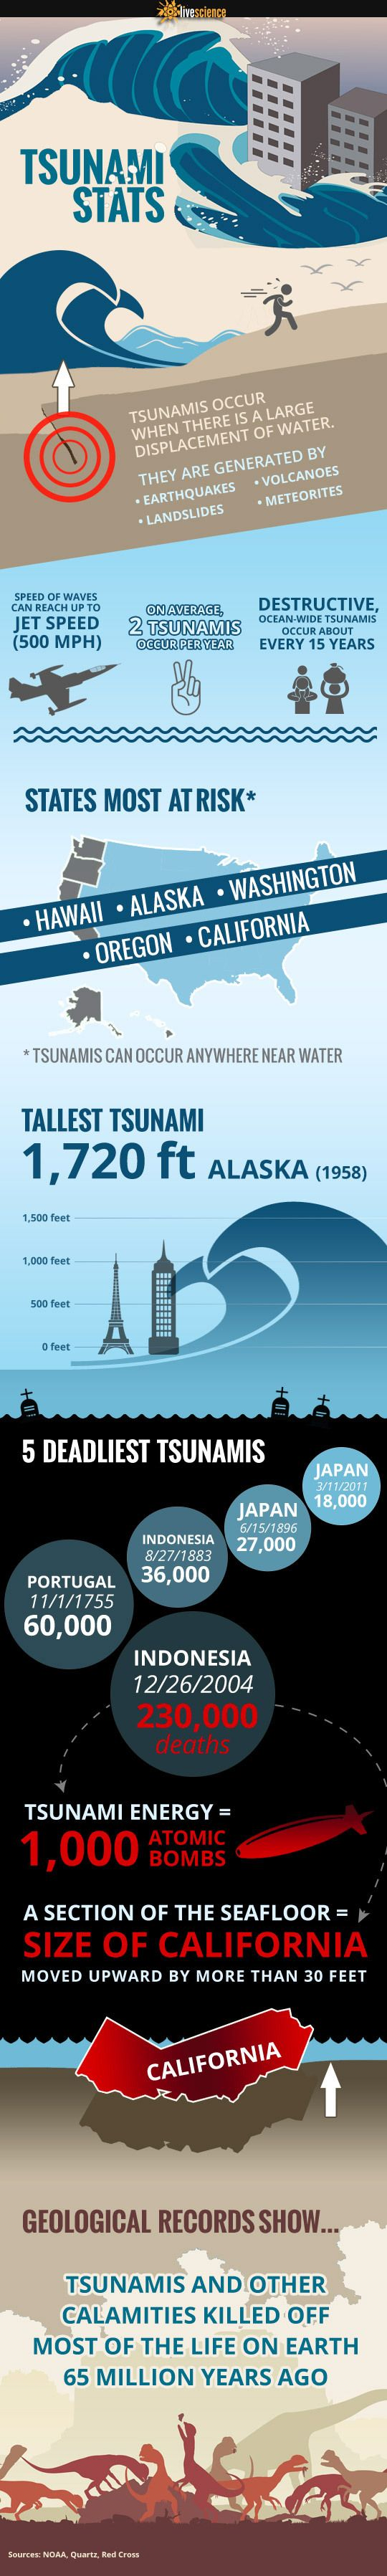 Tsunami Facts You Need to Know